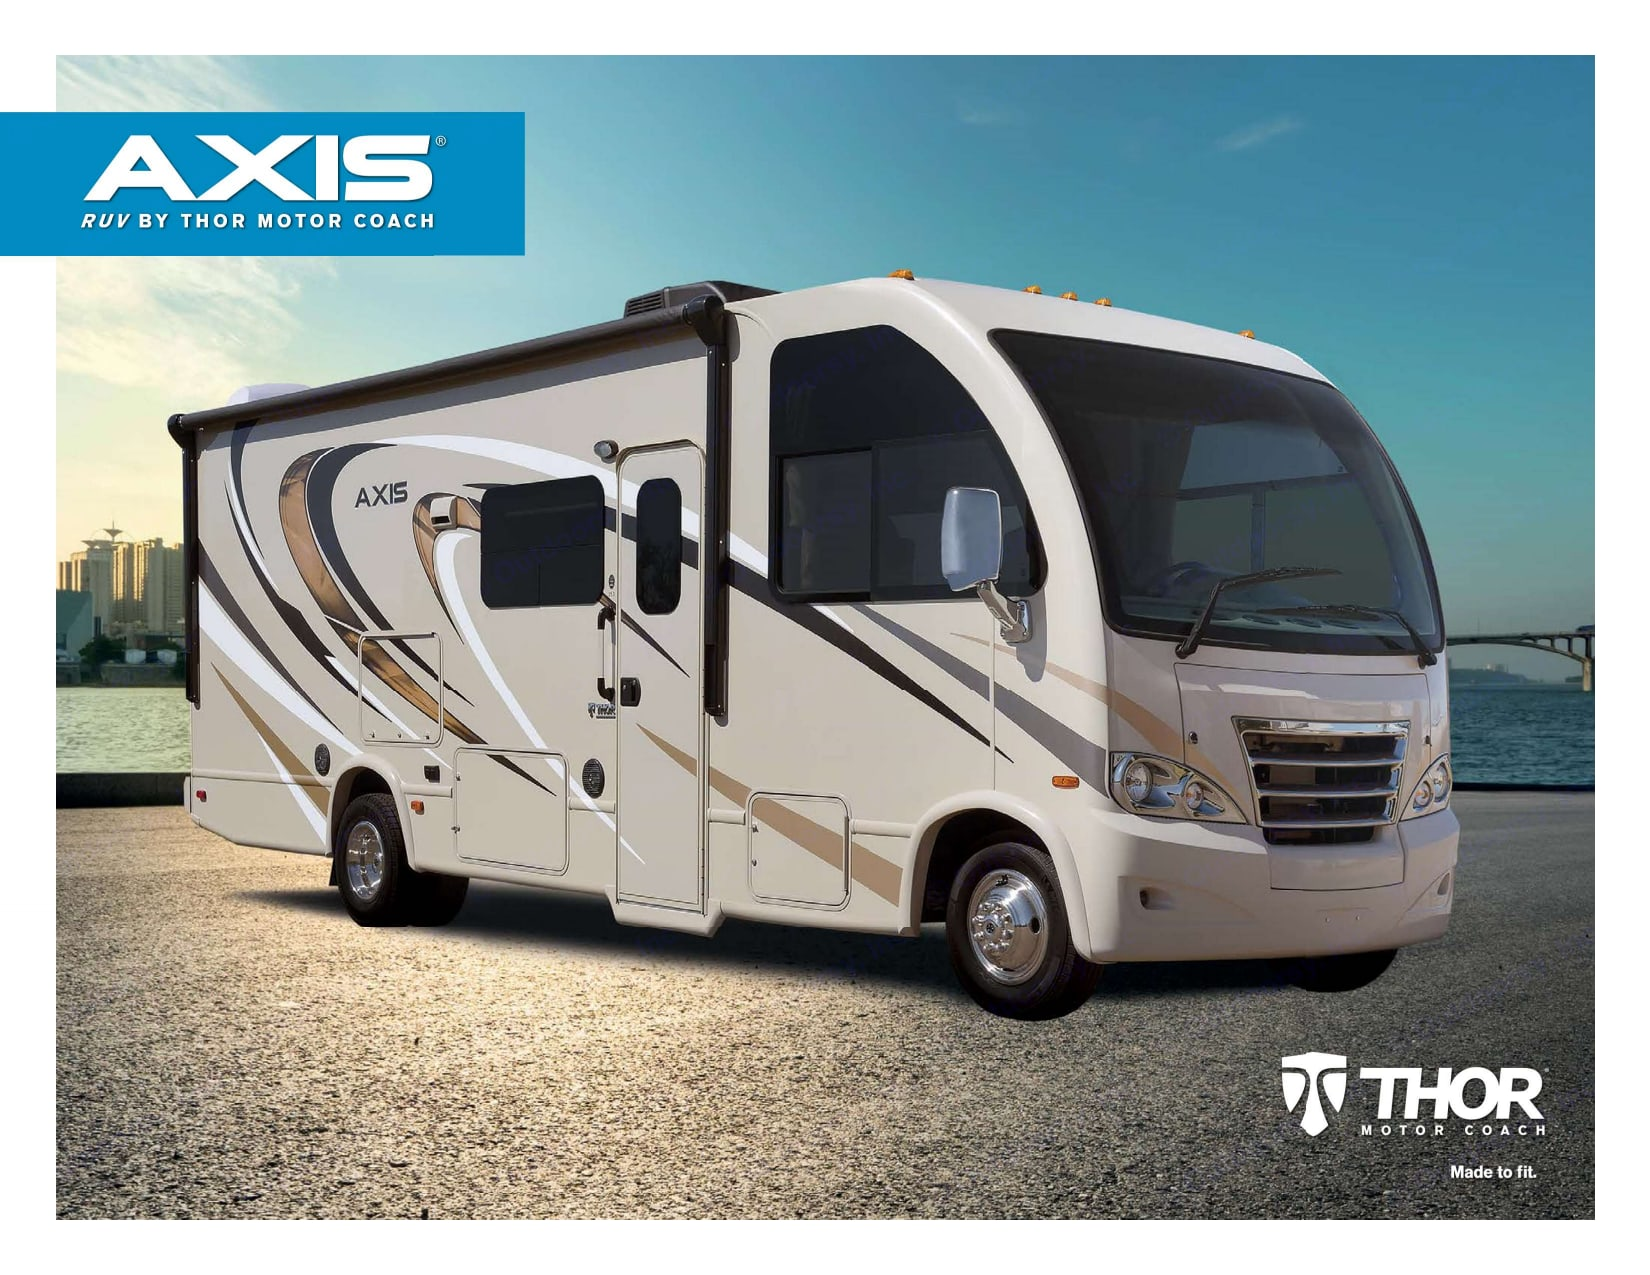 """IDEAL """"CLASS A COACH"""" """"RUV"""" (recreation utility van) NEW CONCEPT put on the RV market in 2016. Most unique Class A in my 41 yrs owning RV's. Thor Motor Coach Axis 2017"""